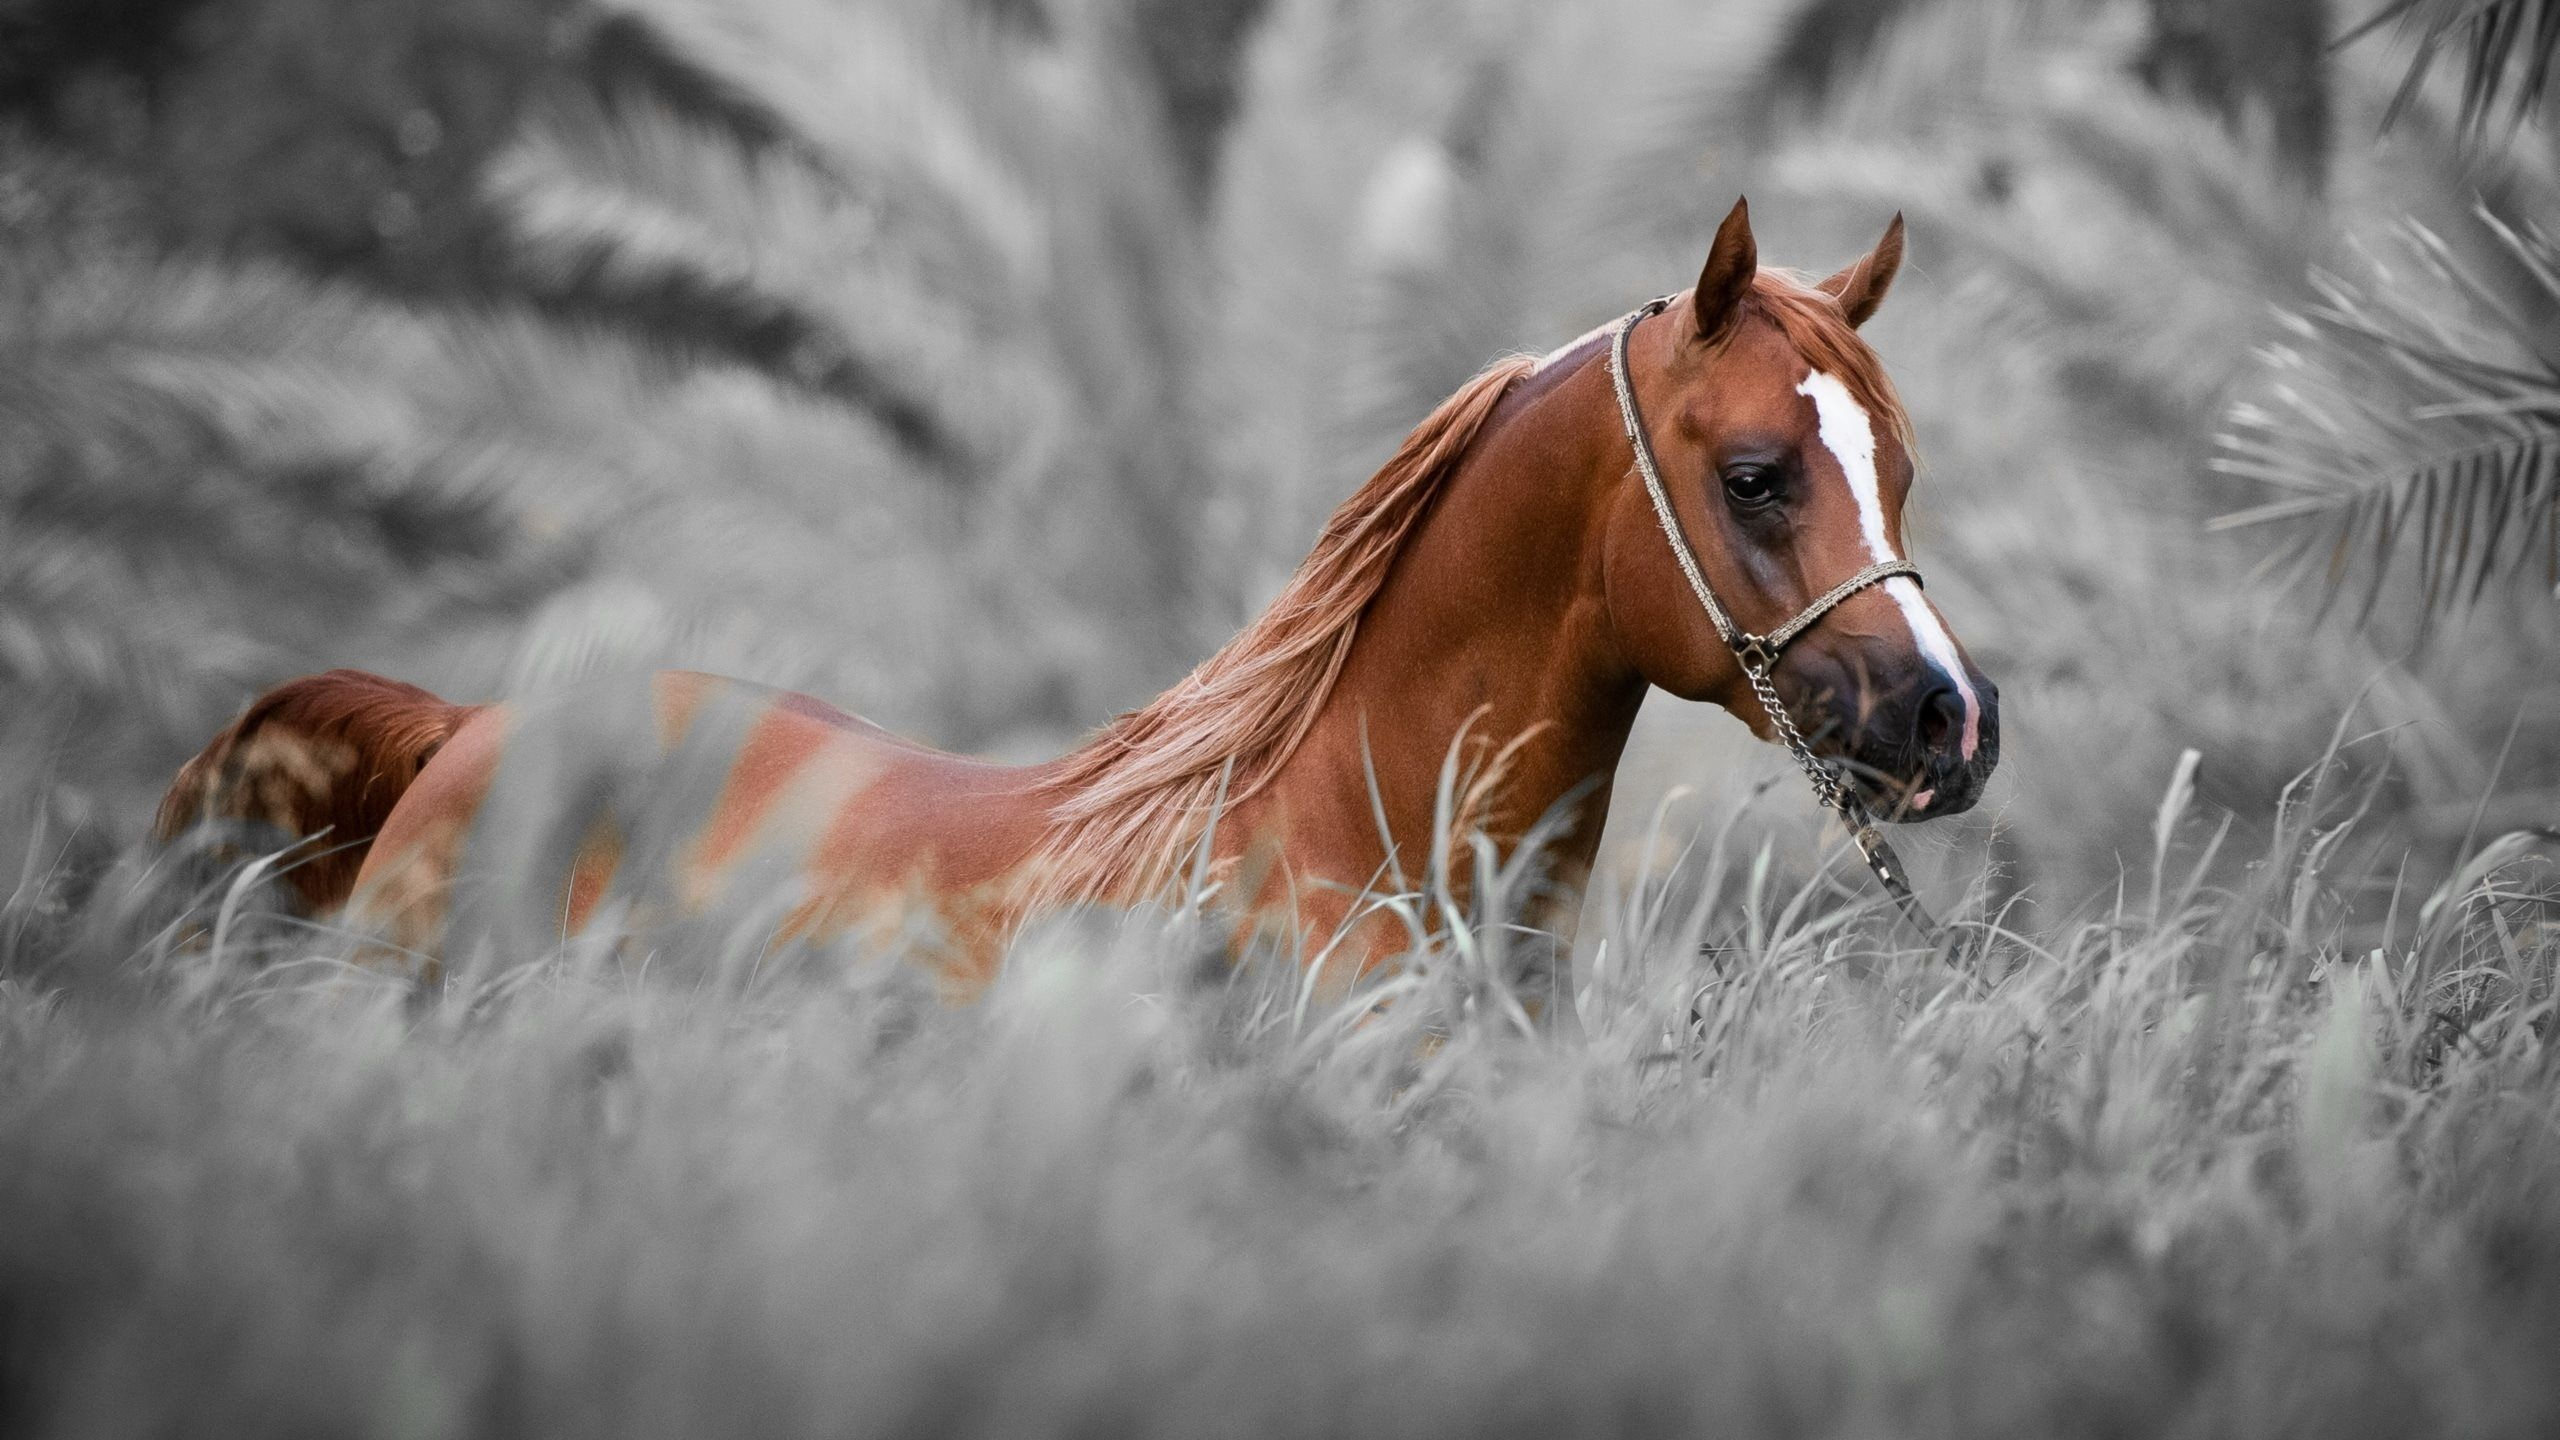 44 Animals Horse Wallpapers Download Beautiful Arabian Horses Horses Horse Background